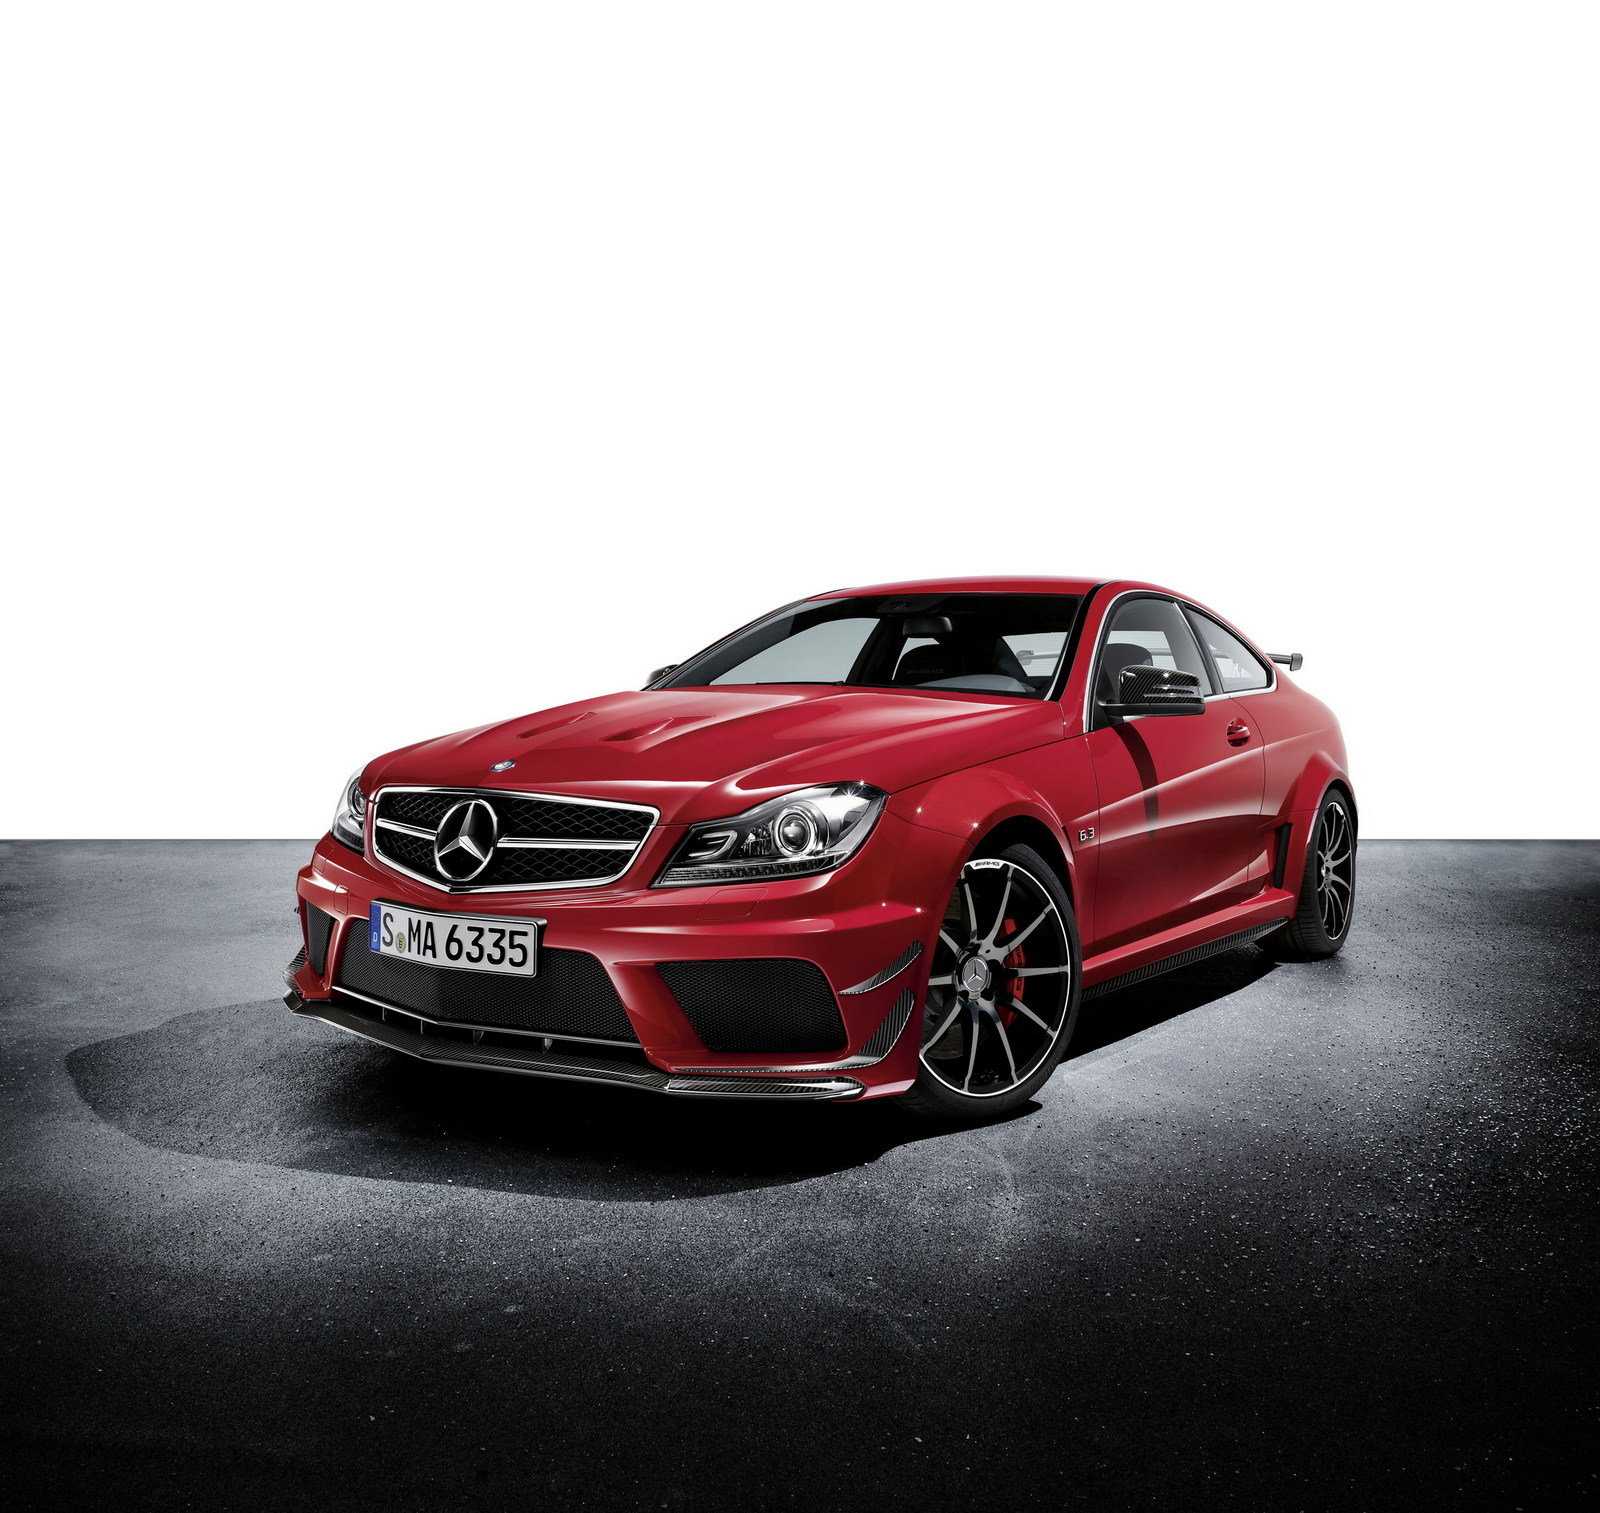 2013 mercedes c63 amg black series coupe picture 426928 car review top speed. Black Bedroom Furniture Sets. Home Design Ideas